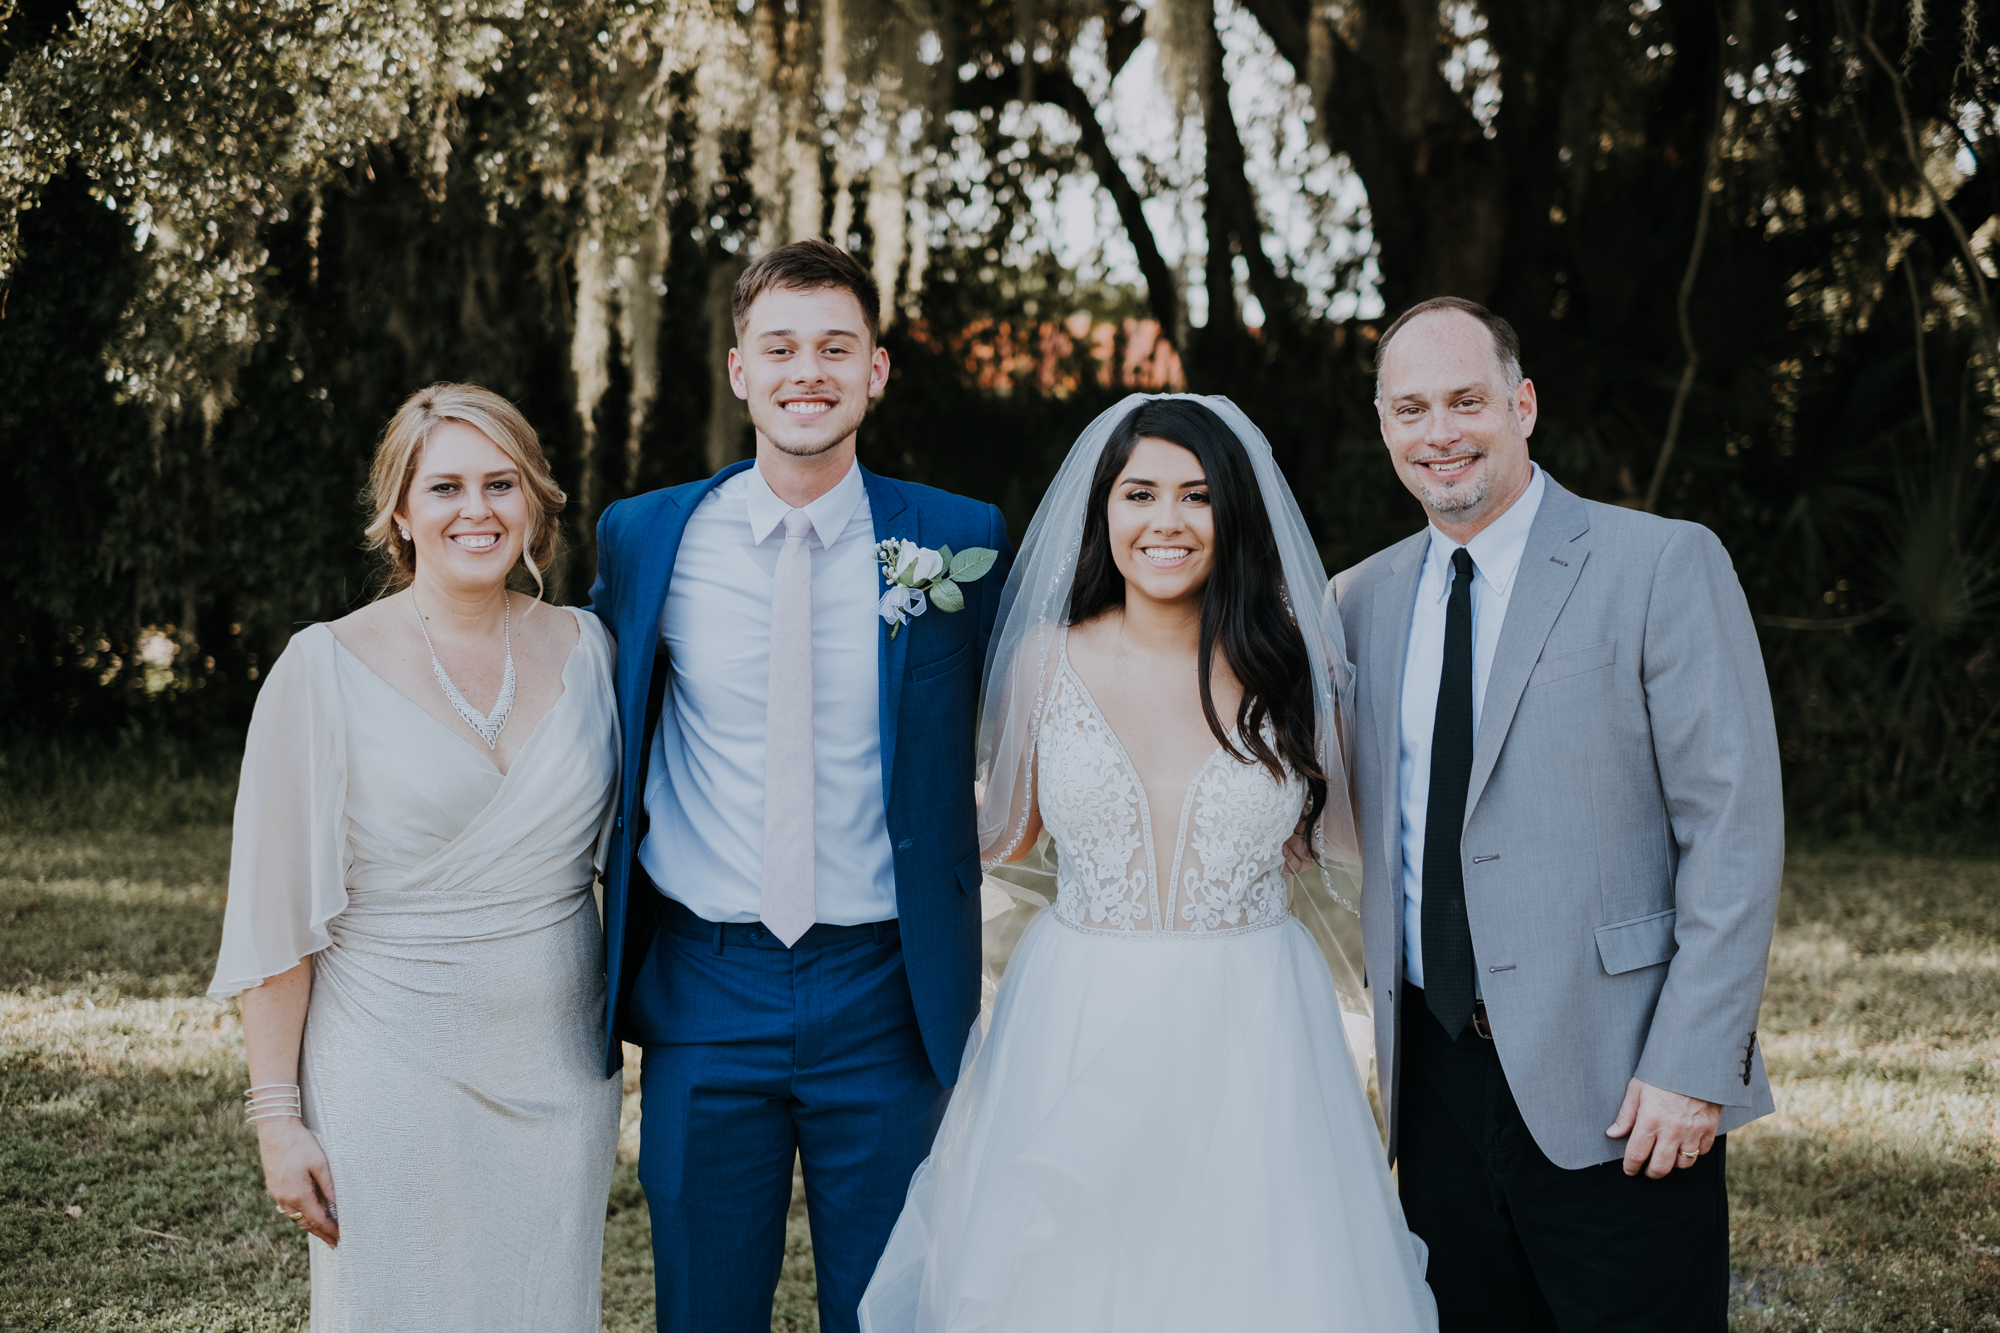 wedding family portraits | group wedding portraits | outdoor Florida wedding